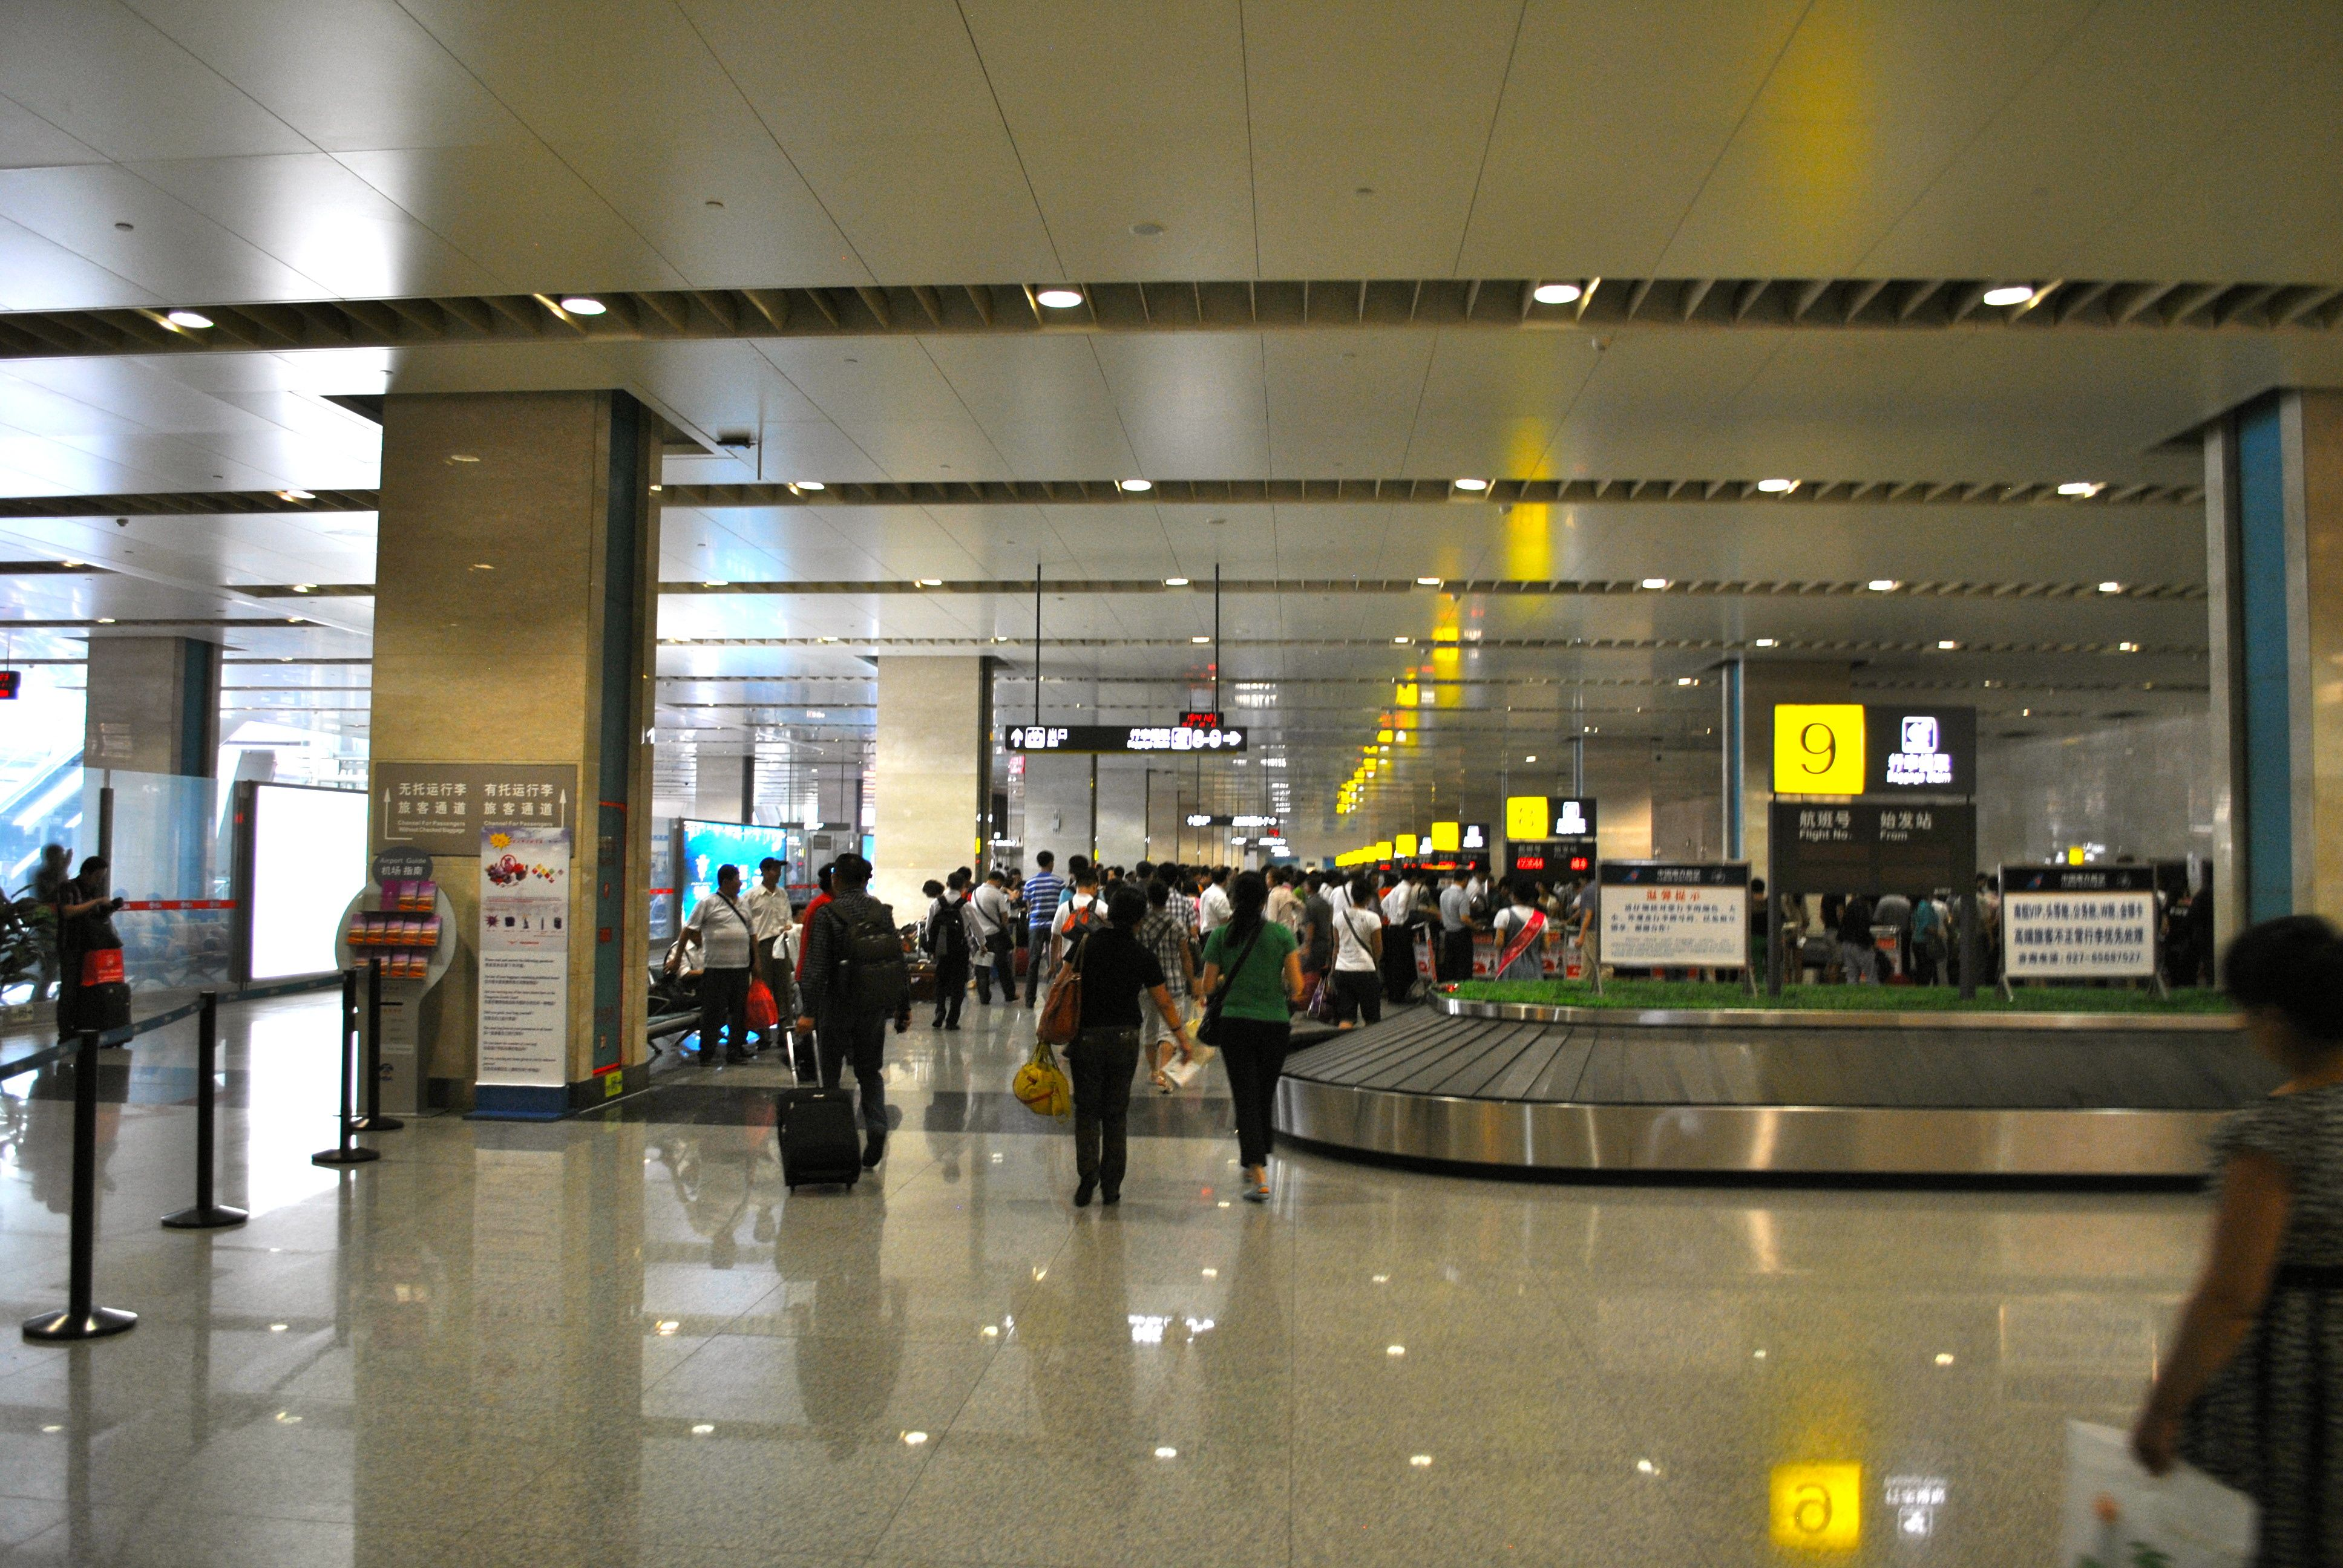 File:Wuhan Tianhe Airport Inside 3.jpg - Wikimedia Commons